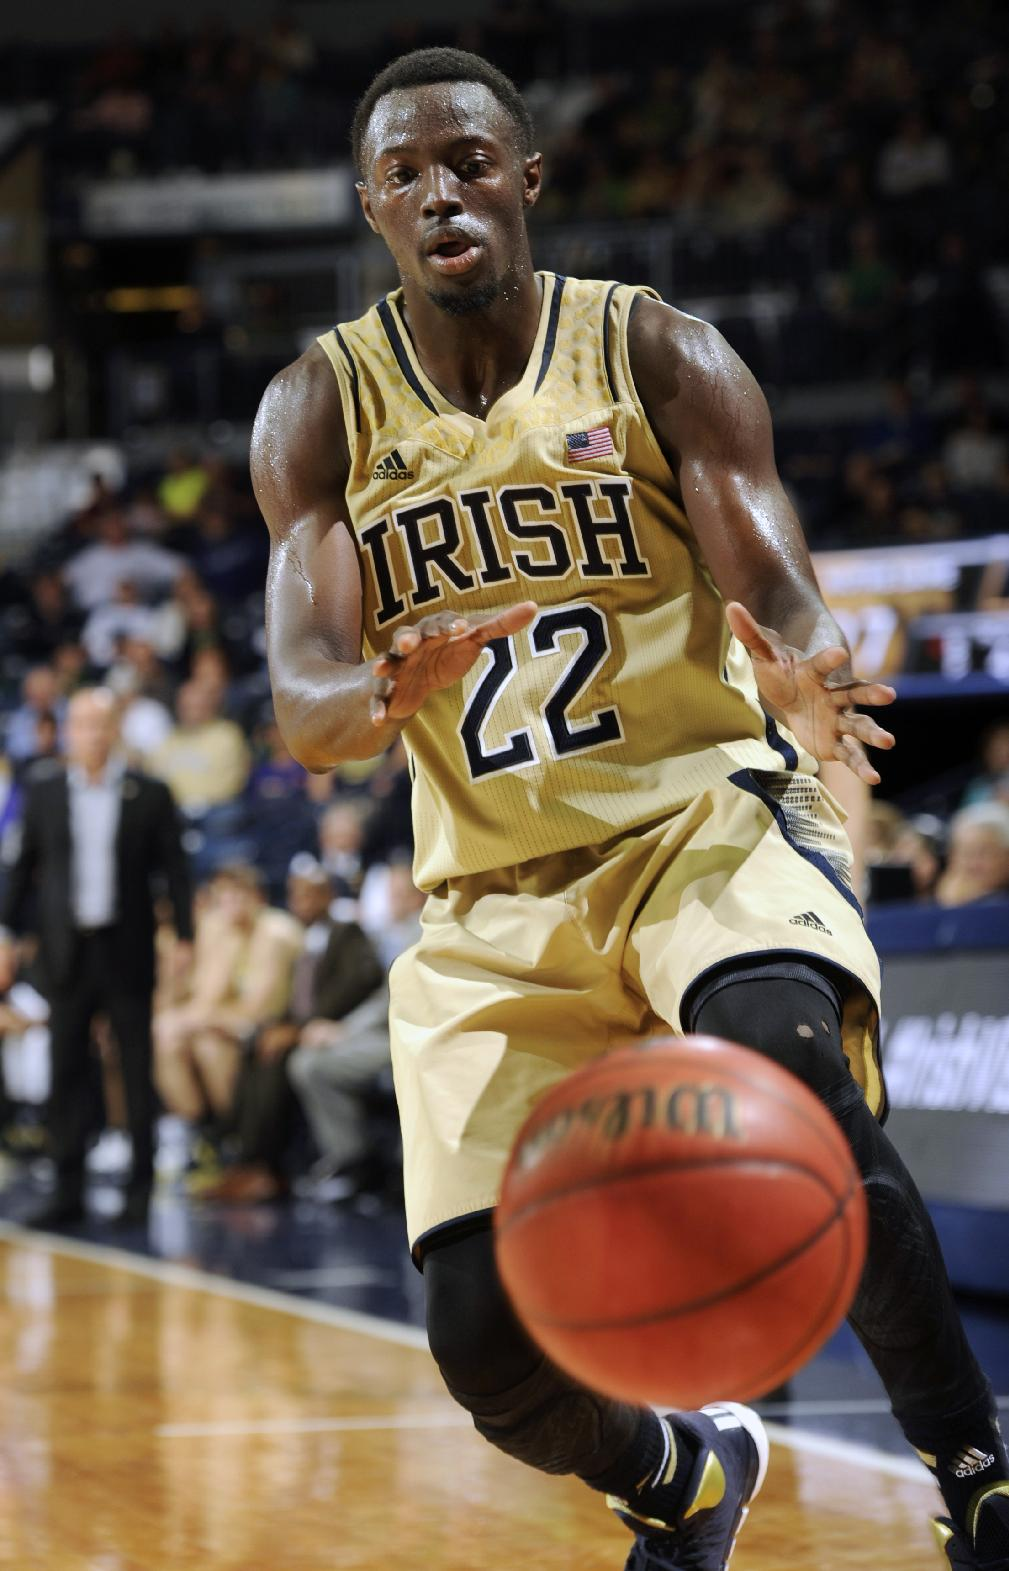 Notre Dame guard Jerian Grant throws a pass during the first half of an NCAA college basketball game against Indiana State, Sunday, Nov. 17, 2013, in South Bend, Ind